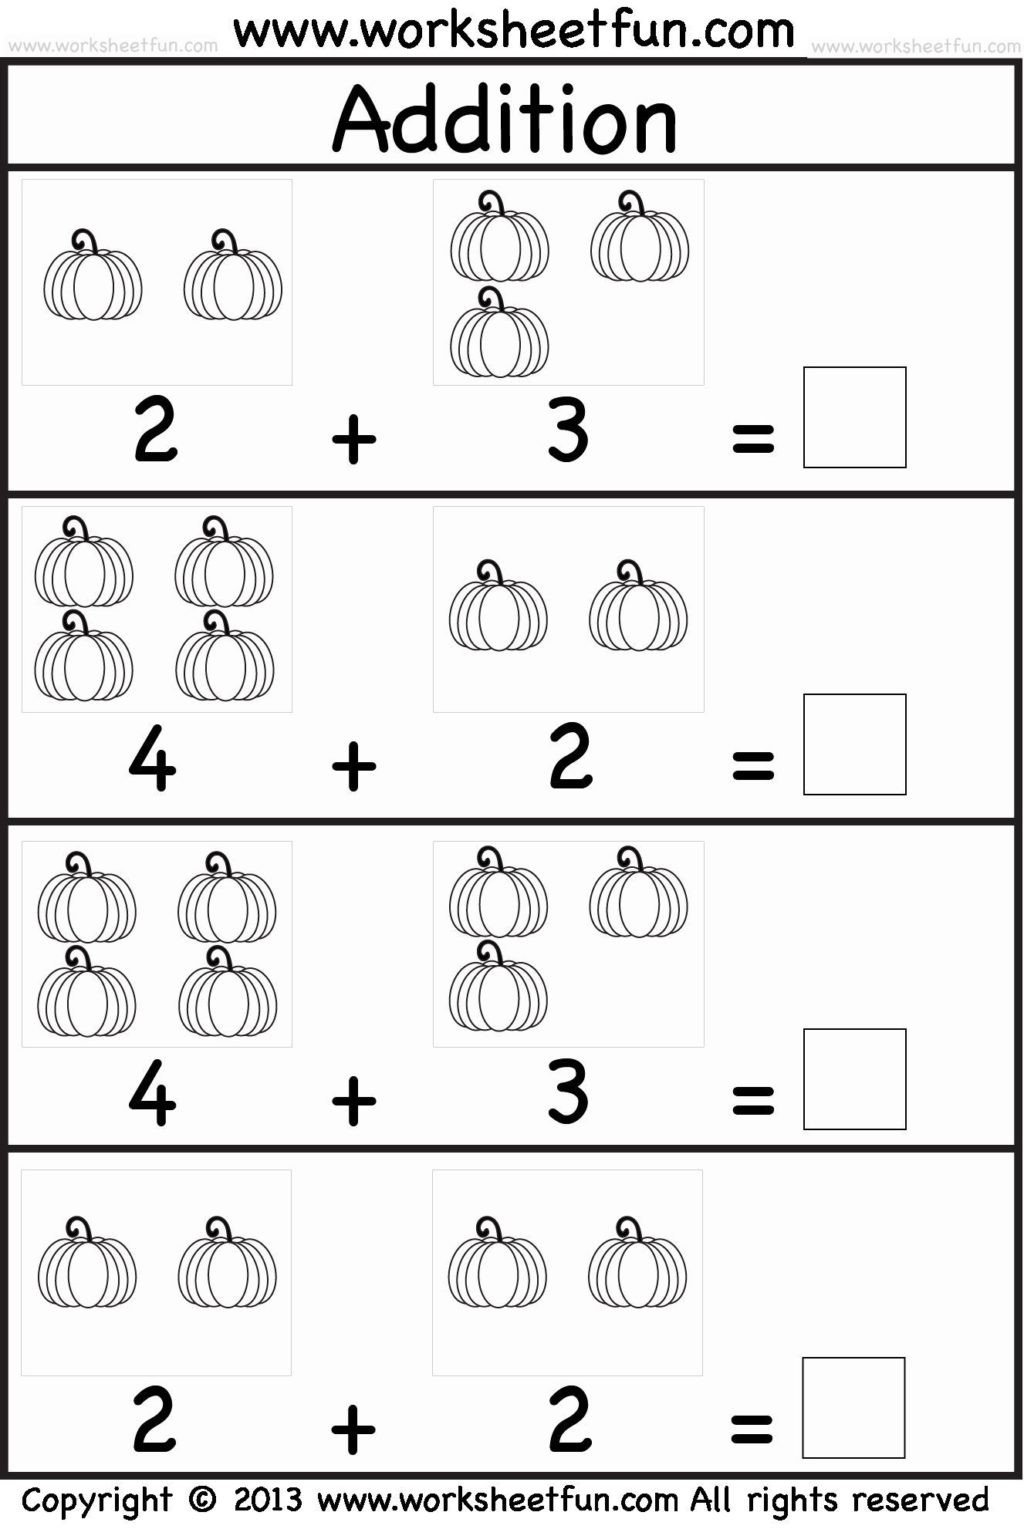 Khan Academy Worksheets Worksheet K5 Learning Worksheets Printable and Activities